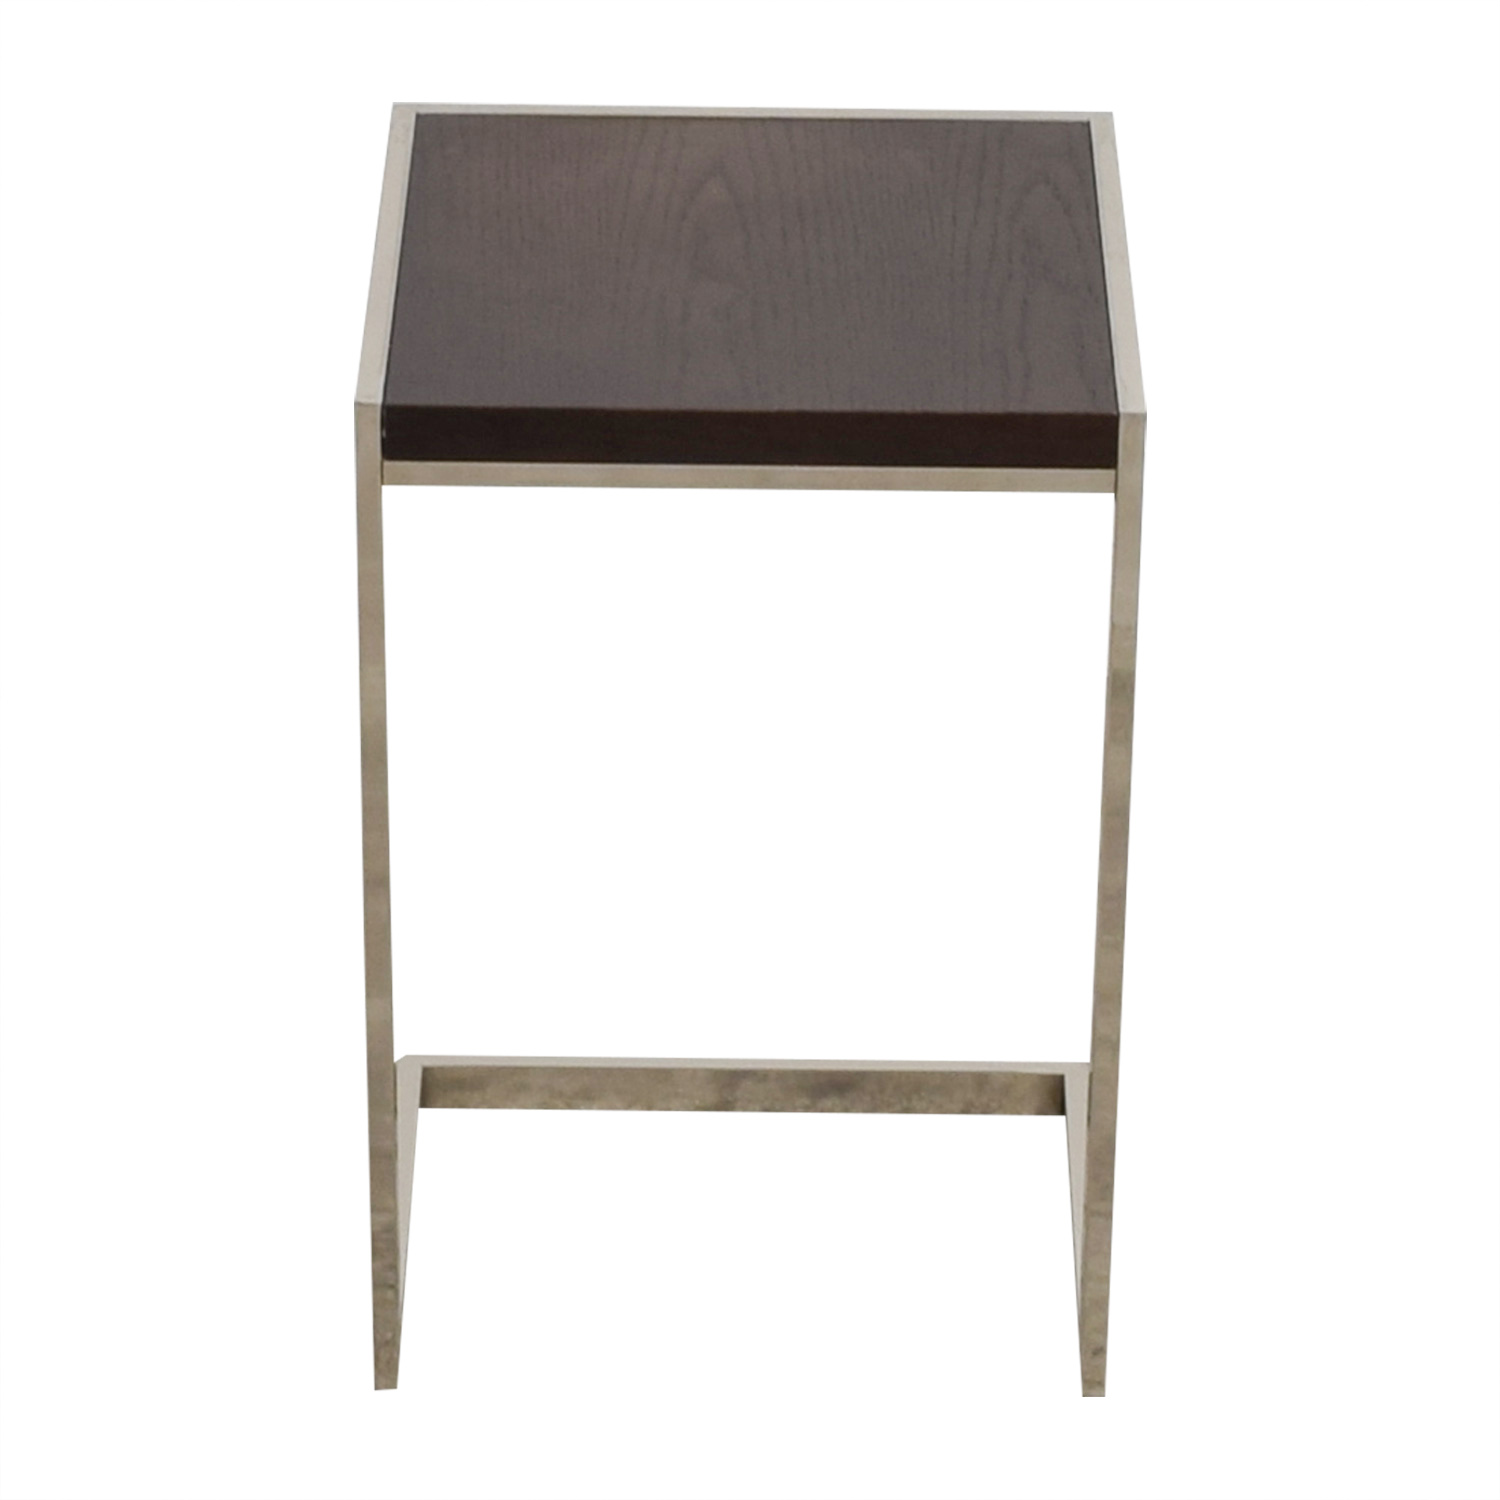 West Elm C-Shaped Wood and Chrome Side Table / Tables